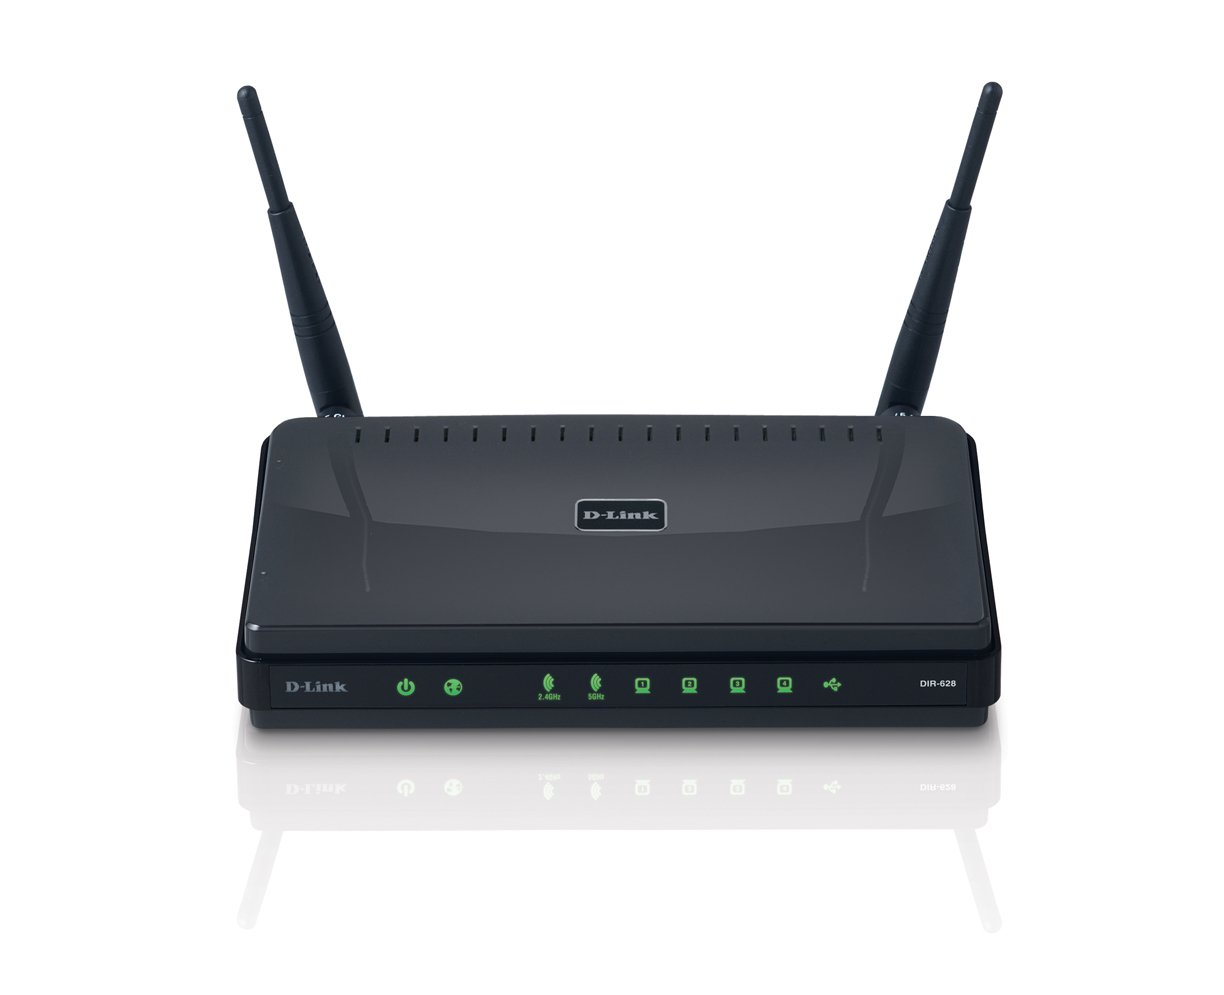 D-Link Dual Band Router